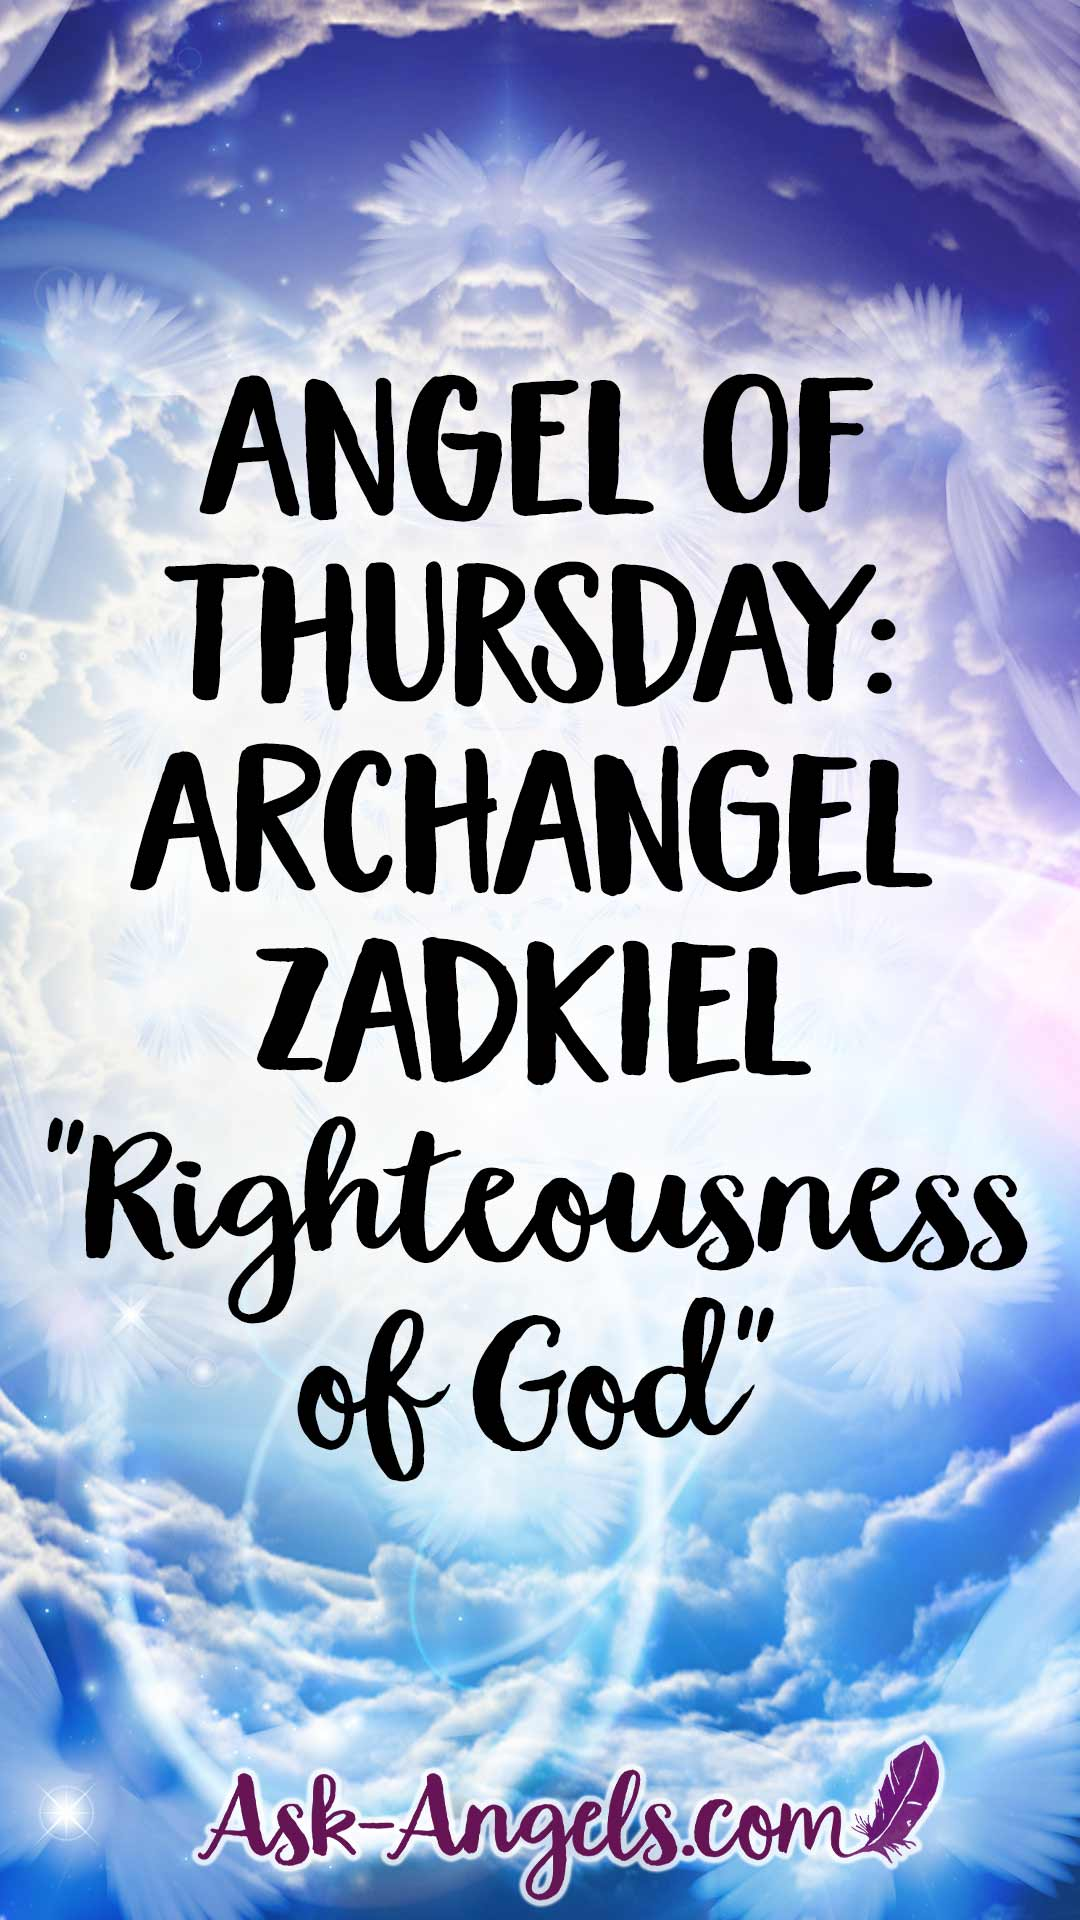 Angel of Thursday: Archangel Zadkiel - Righteousness of God